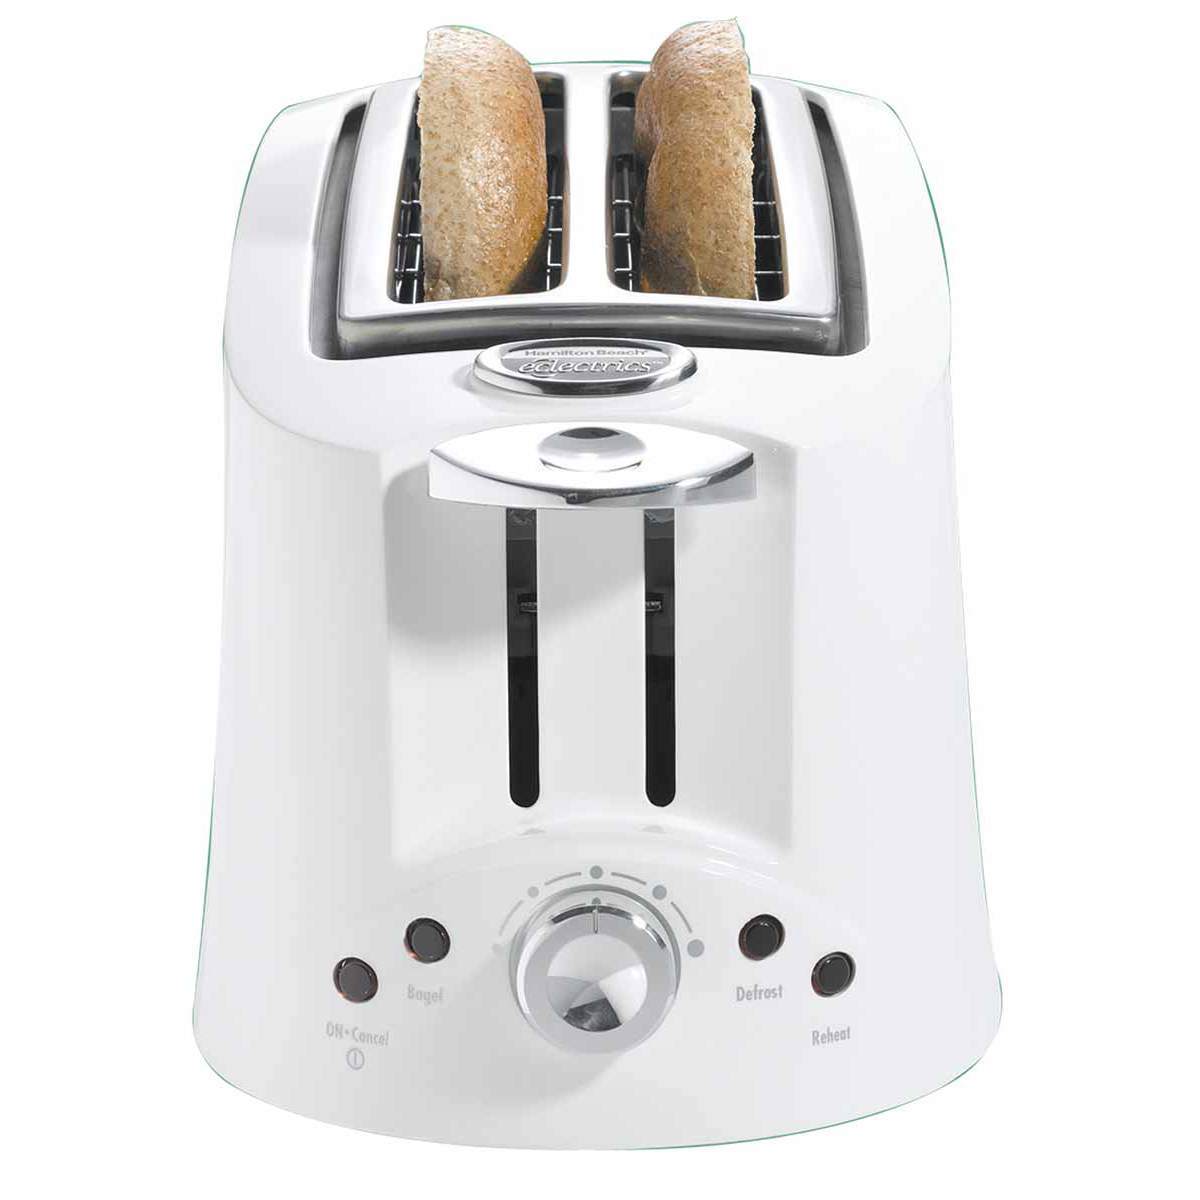 Eclectrics® Sugar (white) All-Metal Toaster (22111)